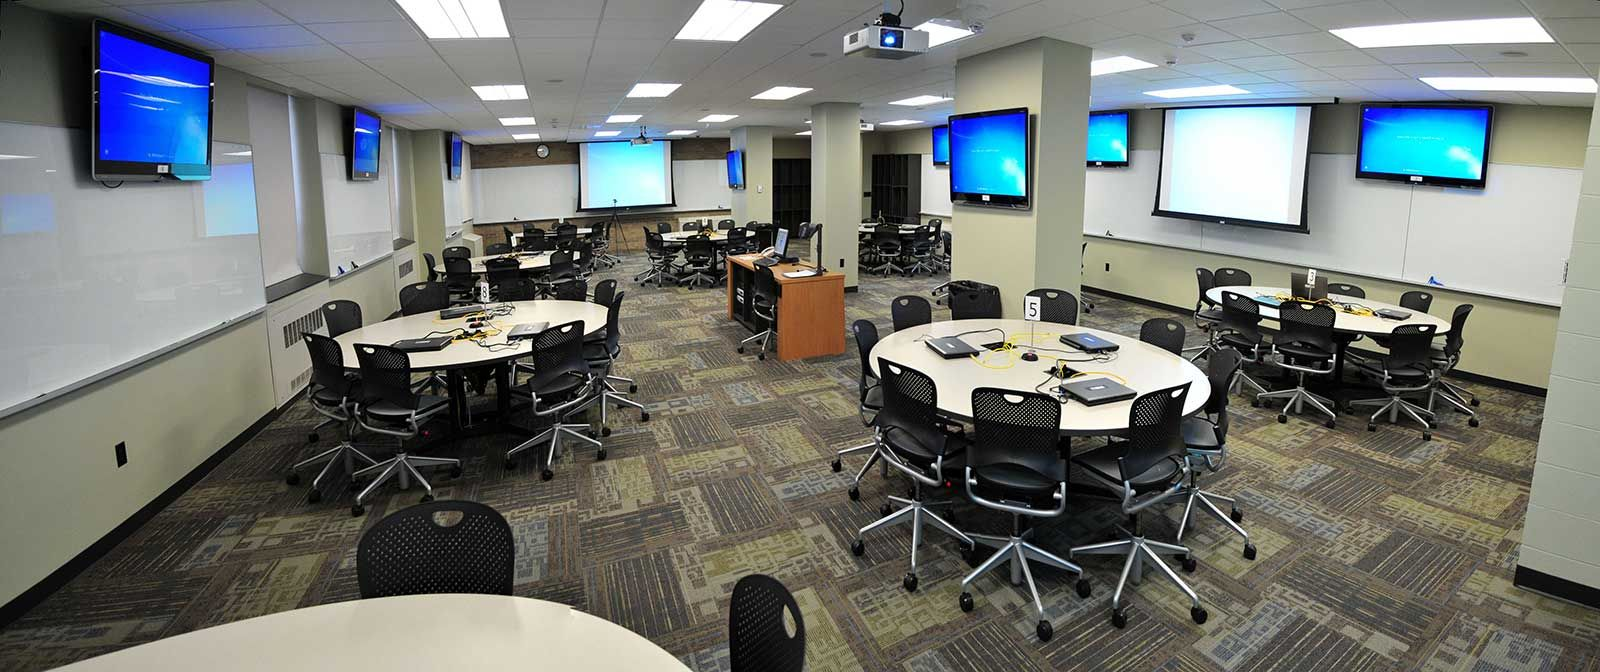 Classroom Design Grants ~ University of iowa active learning space classroom